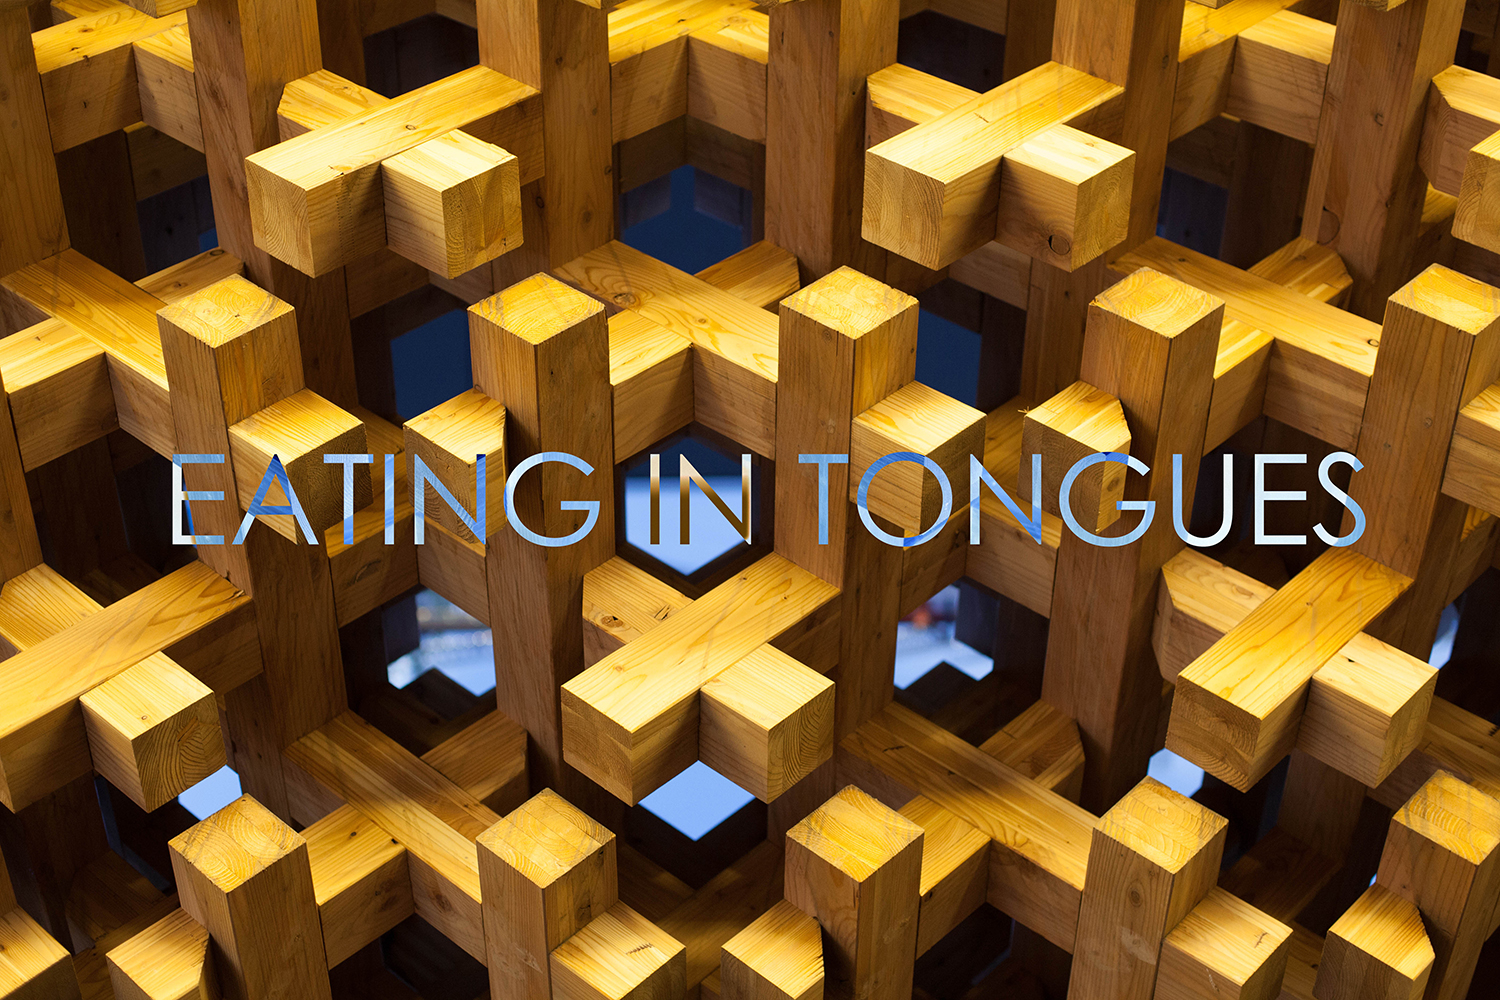 EATING IN TONGUES